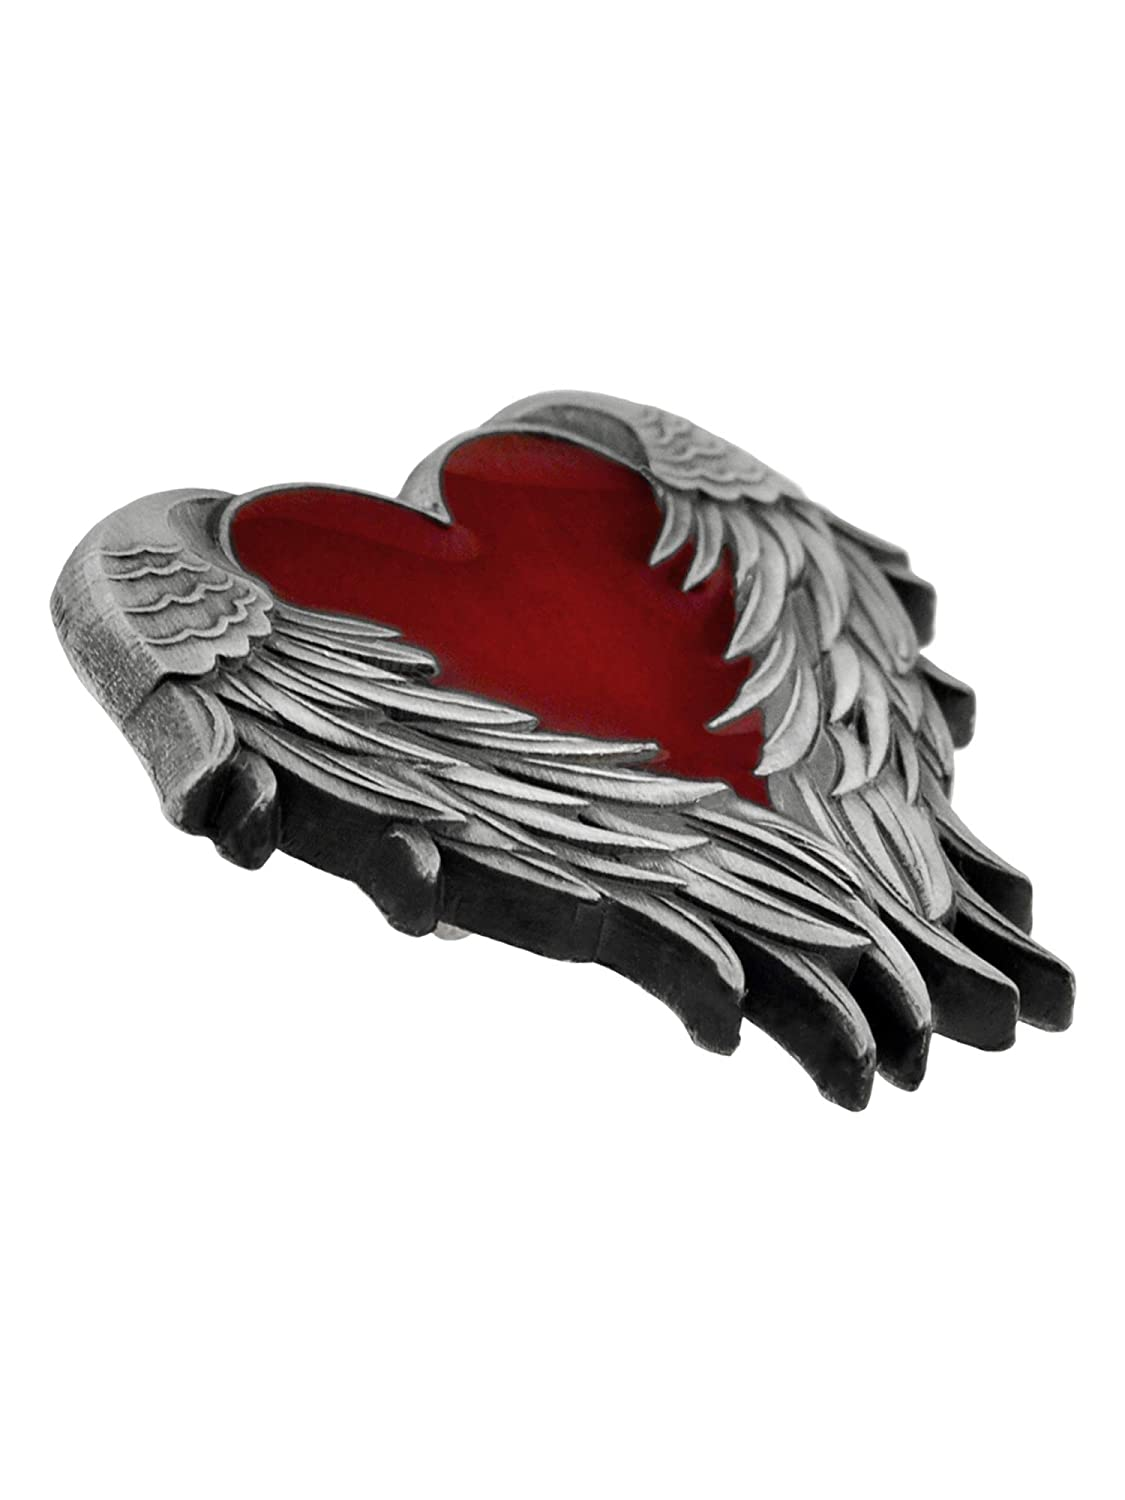 PinMart Antique Nickel Heart with Angel Wings Enamel Lapel Pin